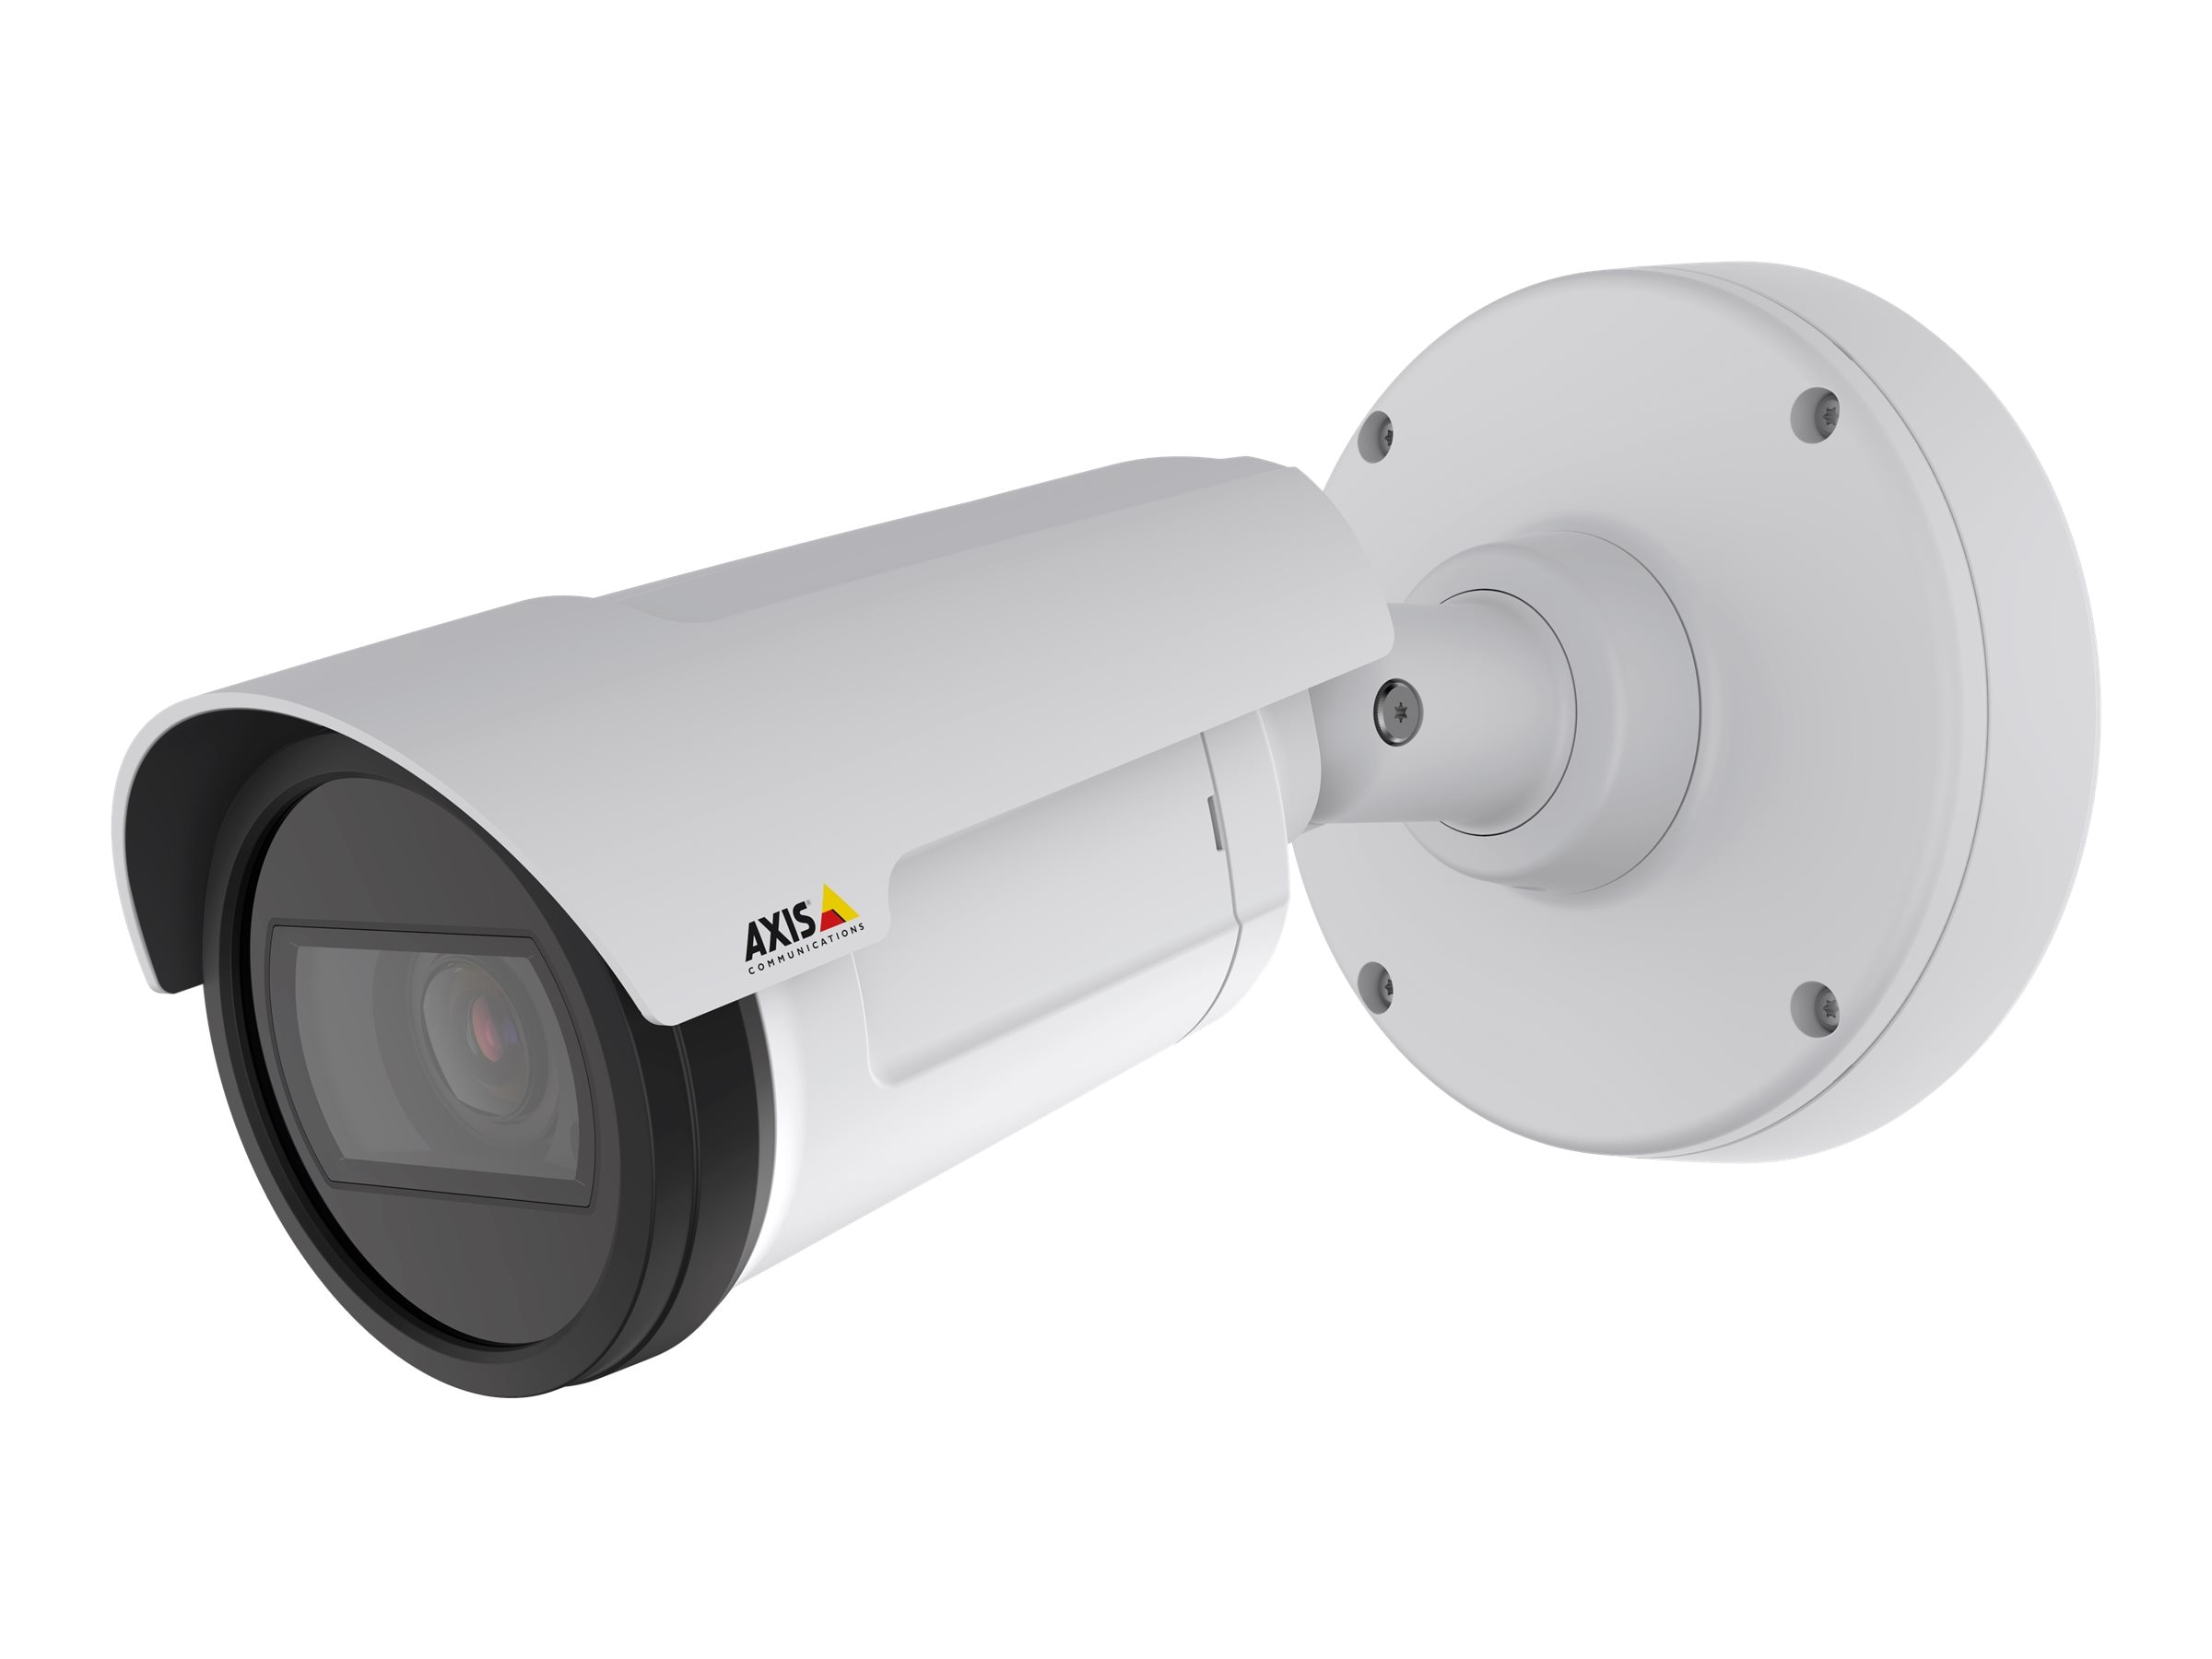 Axis P1405-LE Outdoor Fixed Network IR Camera with 2.8-10mm Lens, 0621-001, 17797976, Cameras - Security